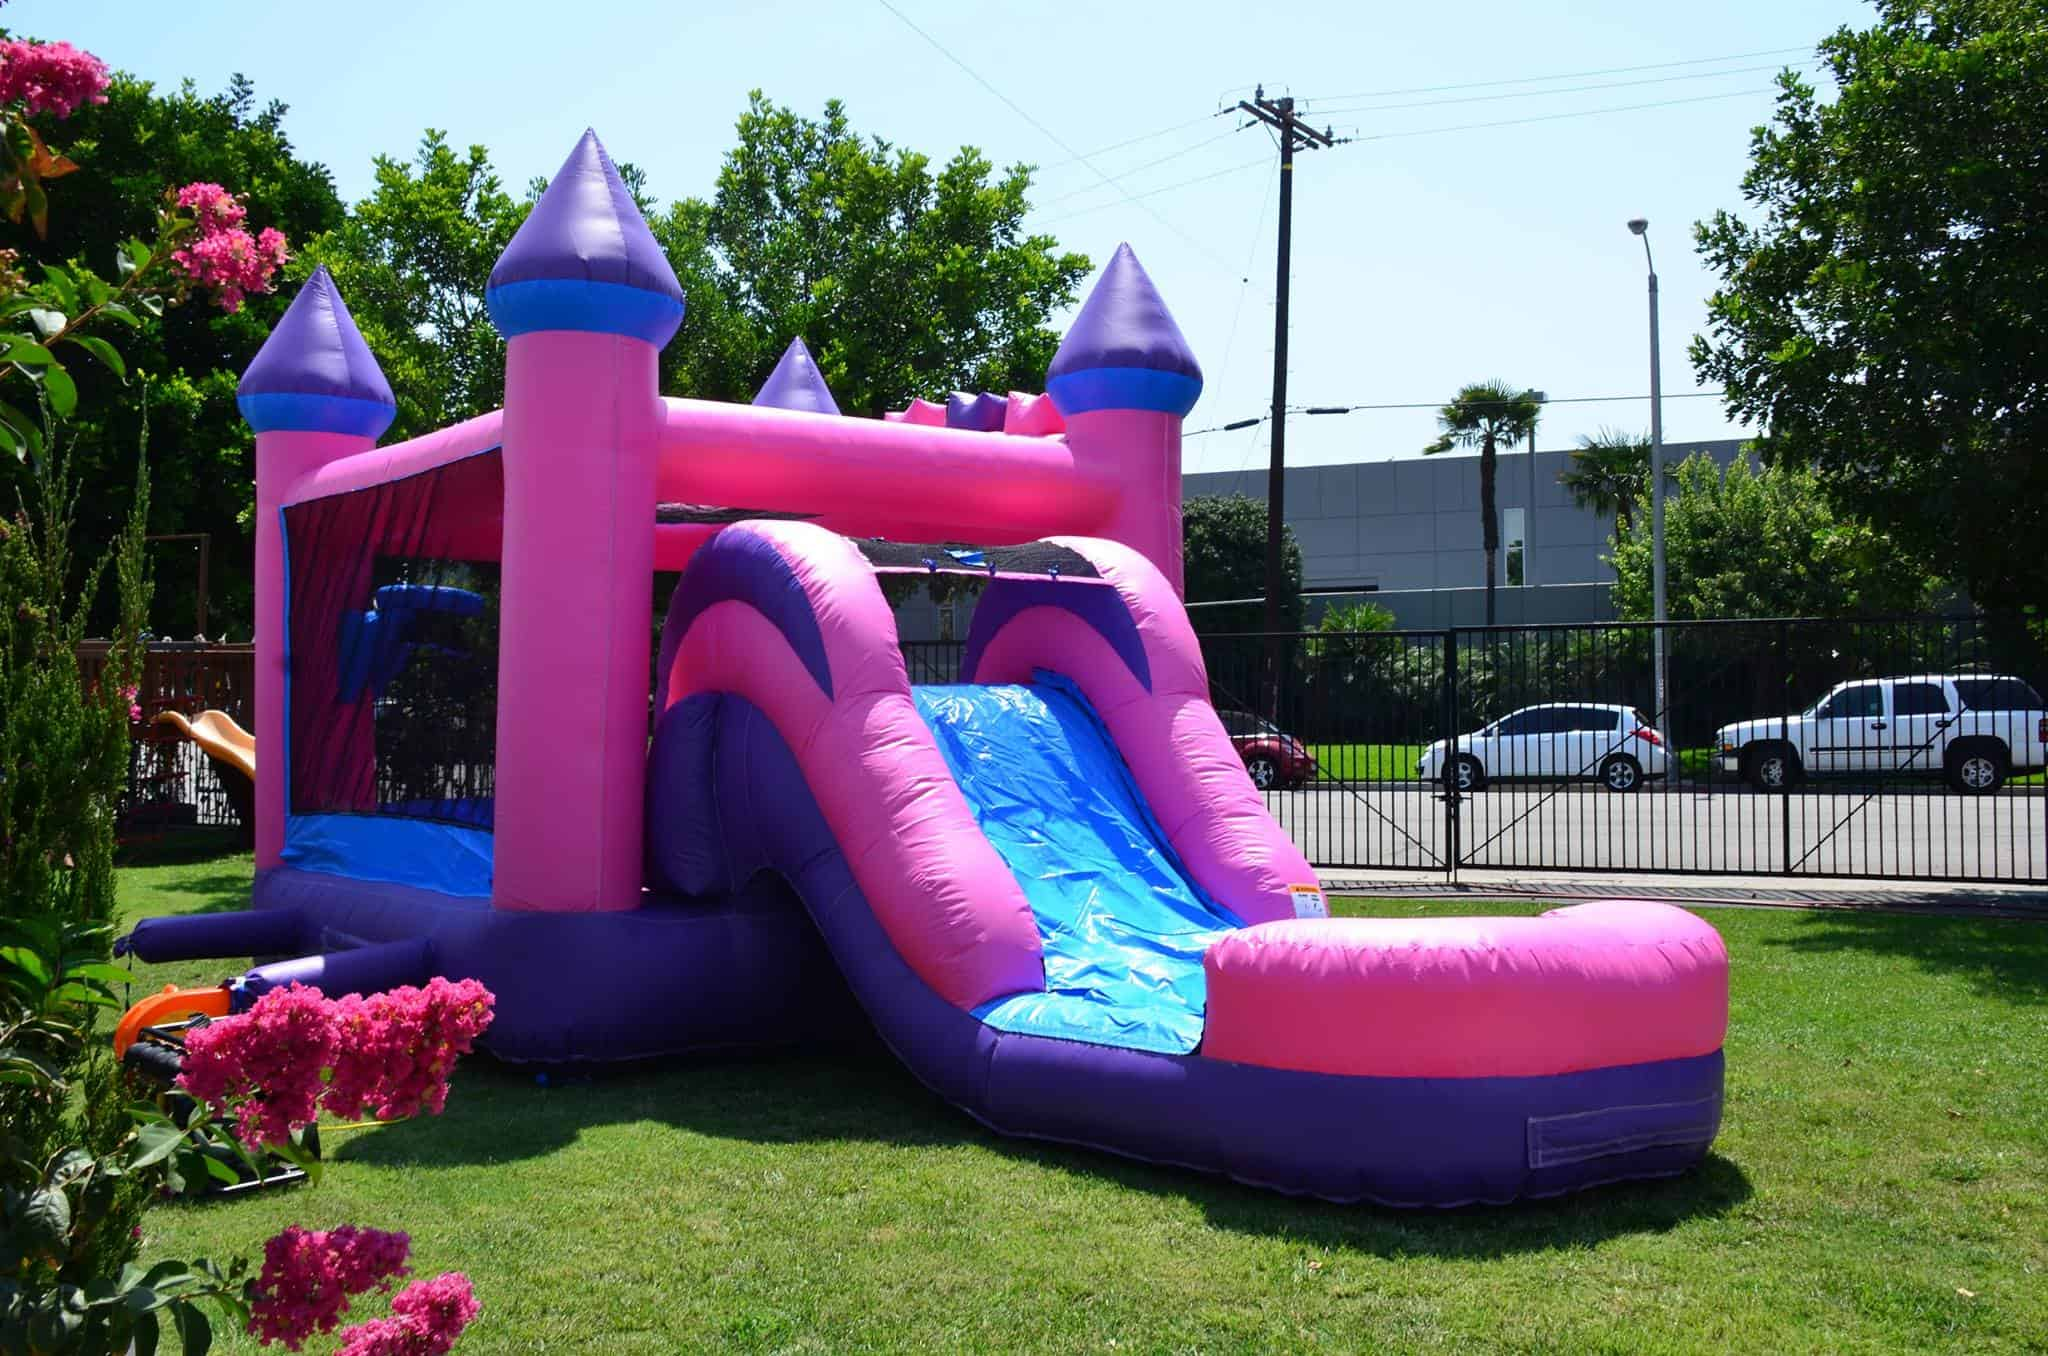 Pink castle bounce house with water slide